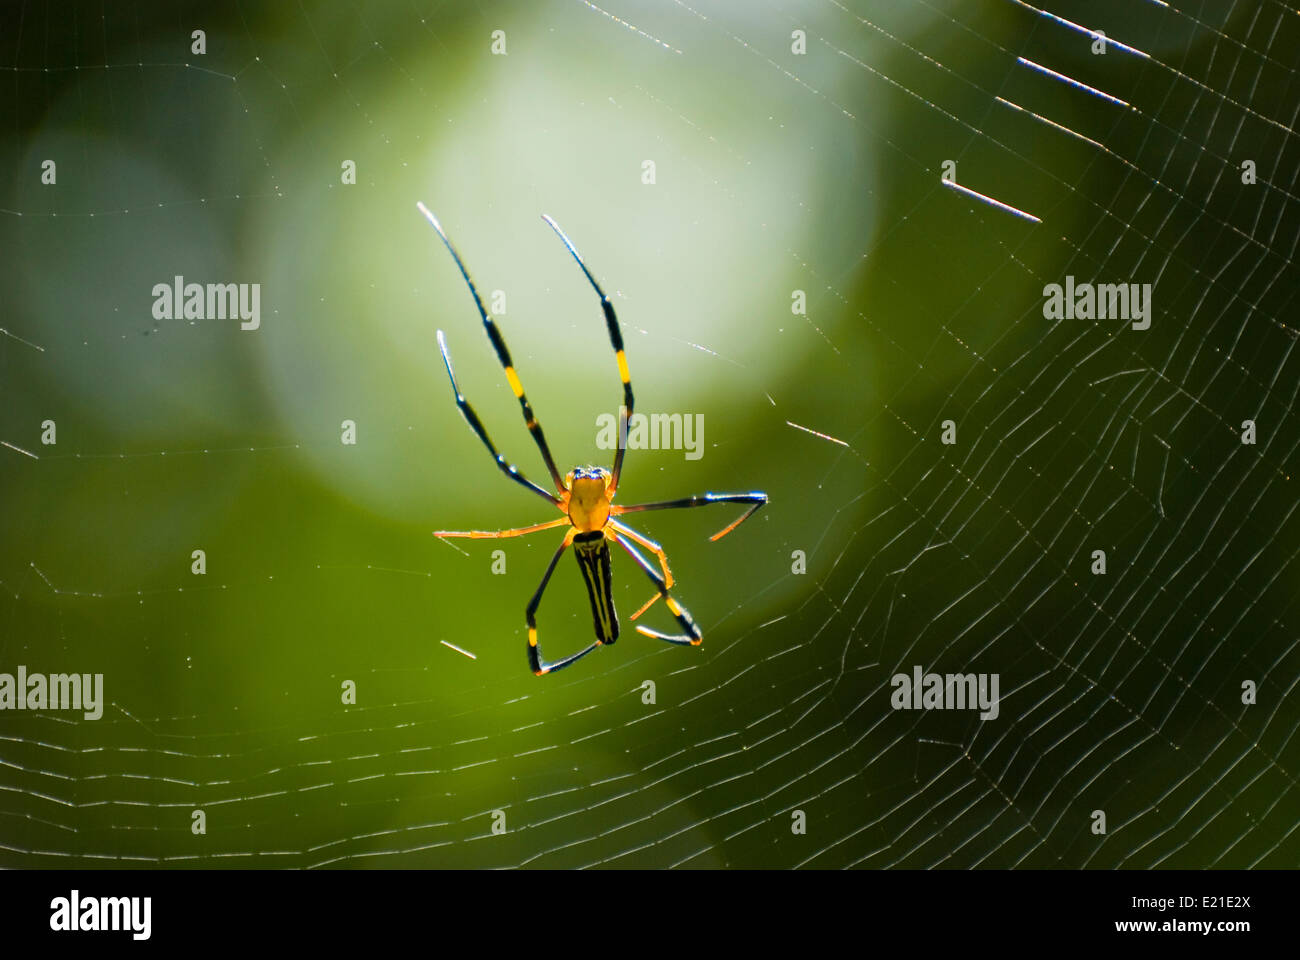 Spider and web with green background - Stock Image